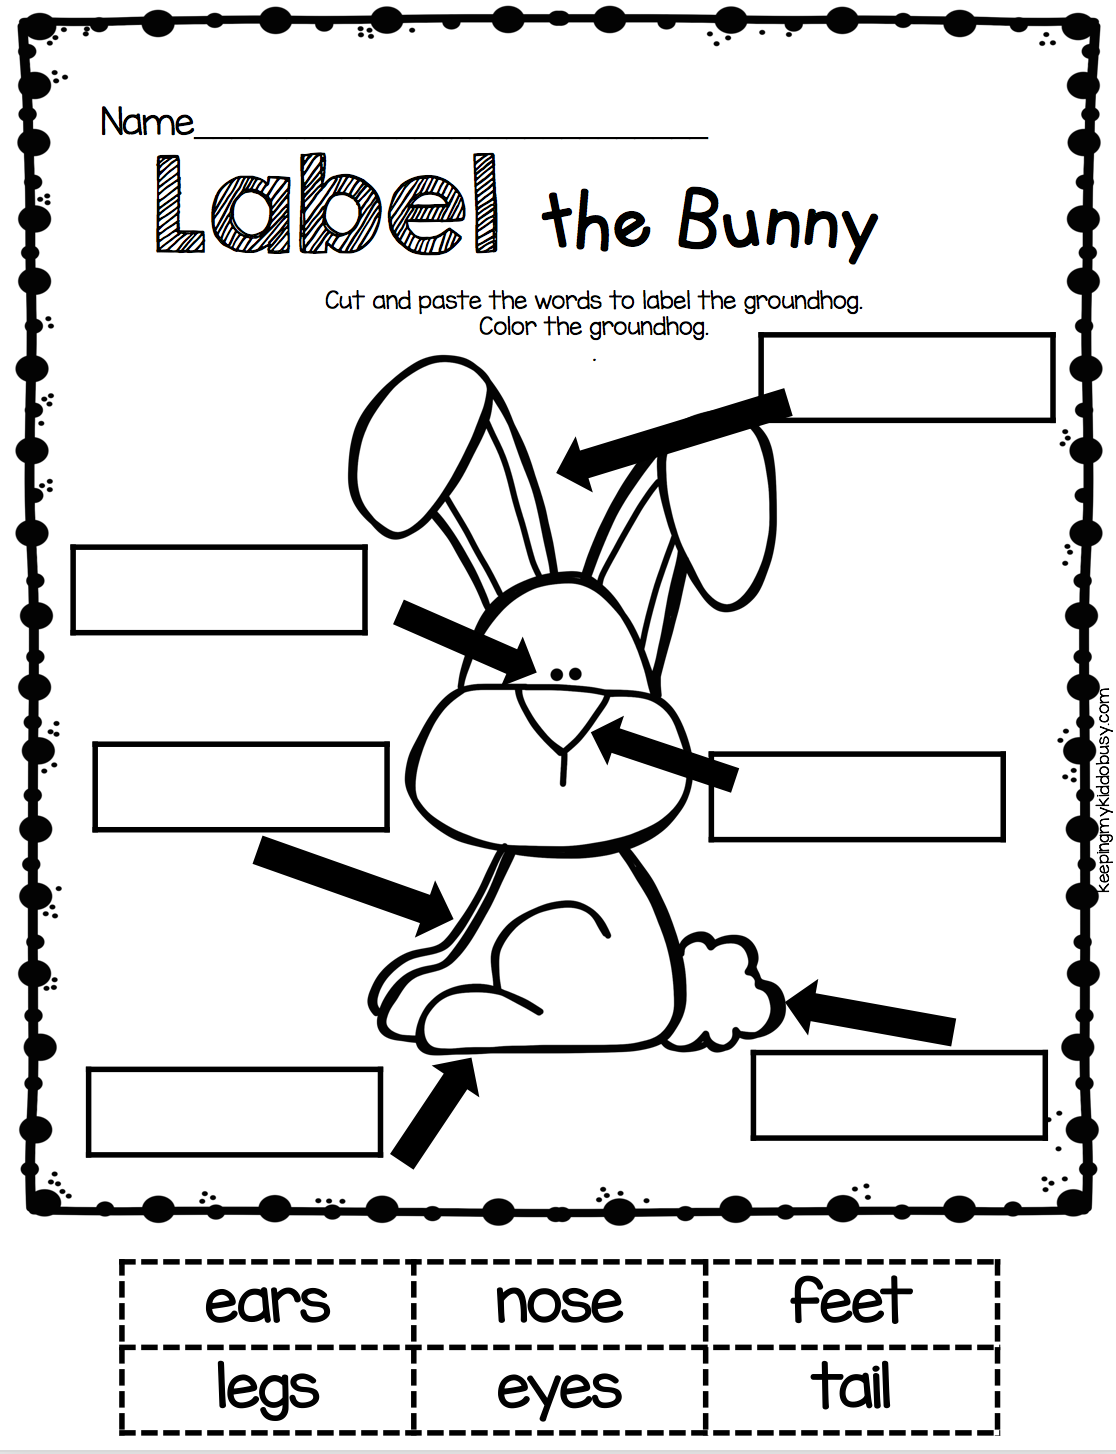 April in Kindergarten FREE WORKSHEETS Kindergarten